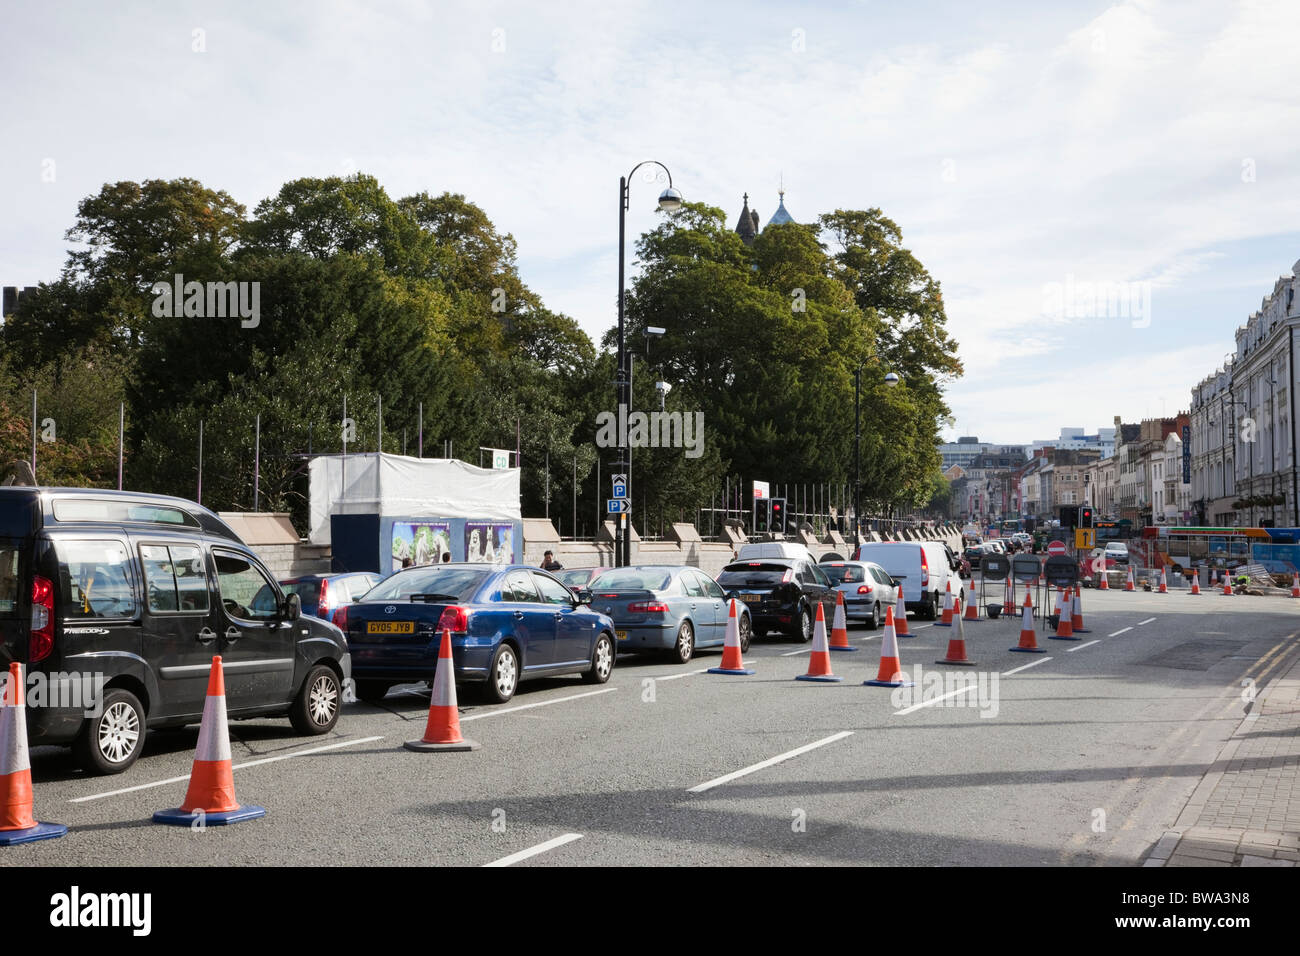 UK, Britain. Roadworks causing a traffic jam in the city centre. - Stock Image